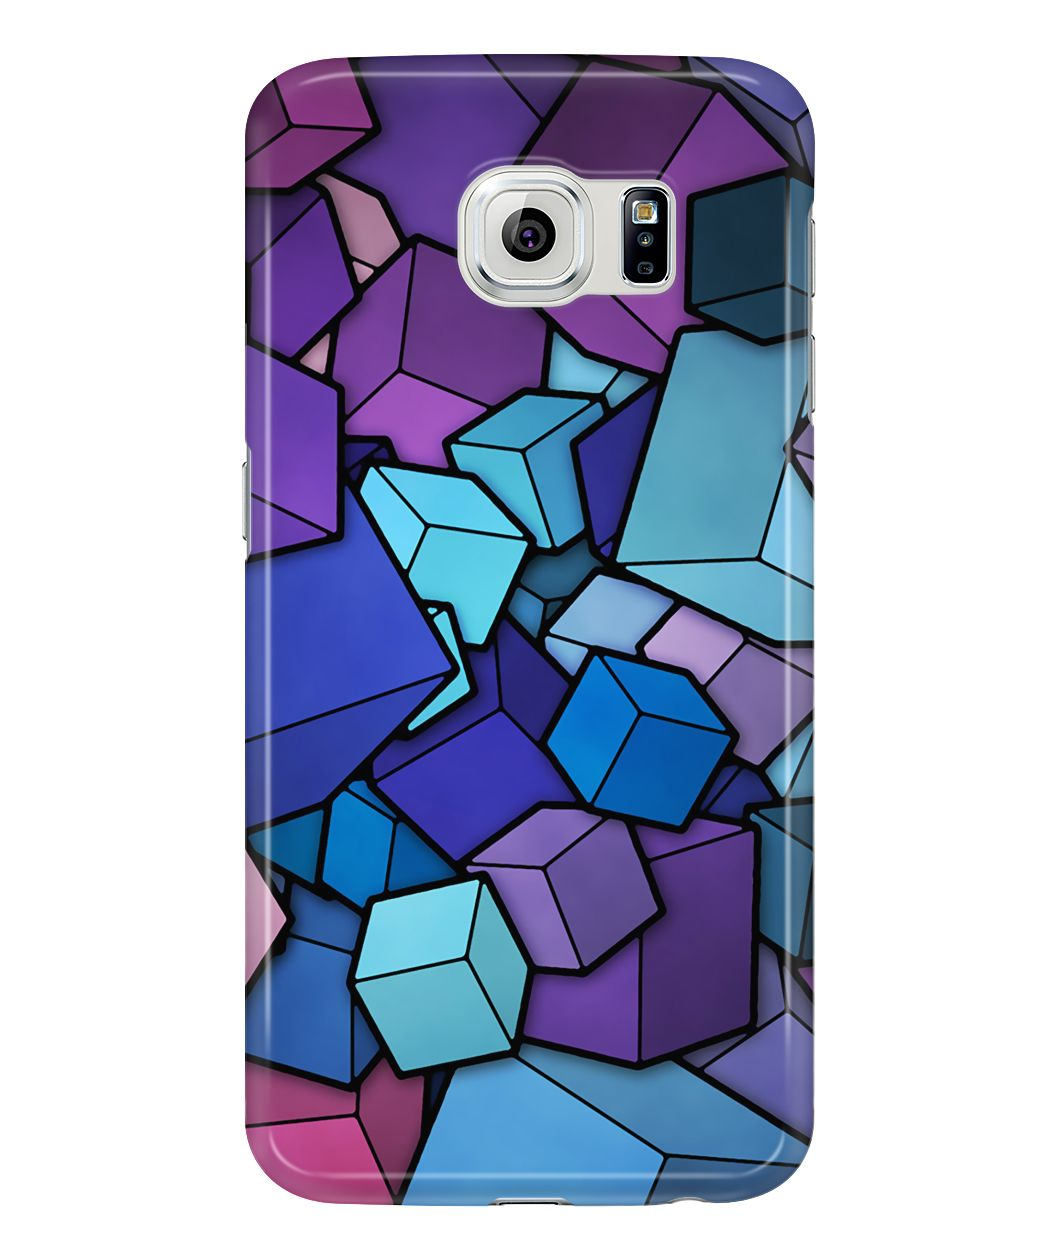 Galaxy S6 Abstract Case V11 In 2019